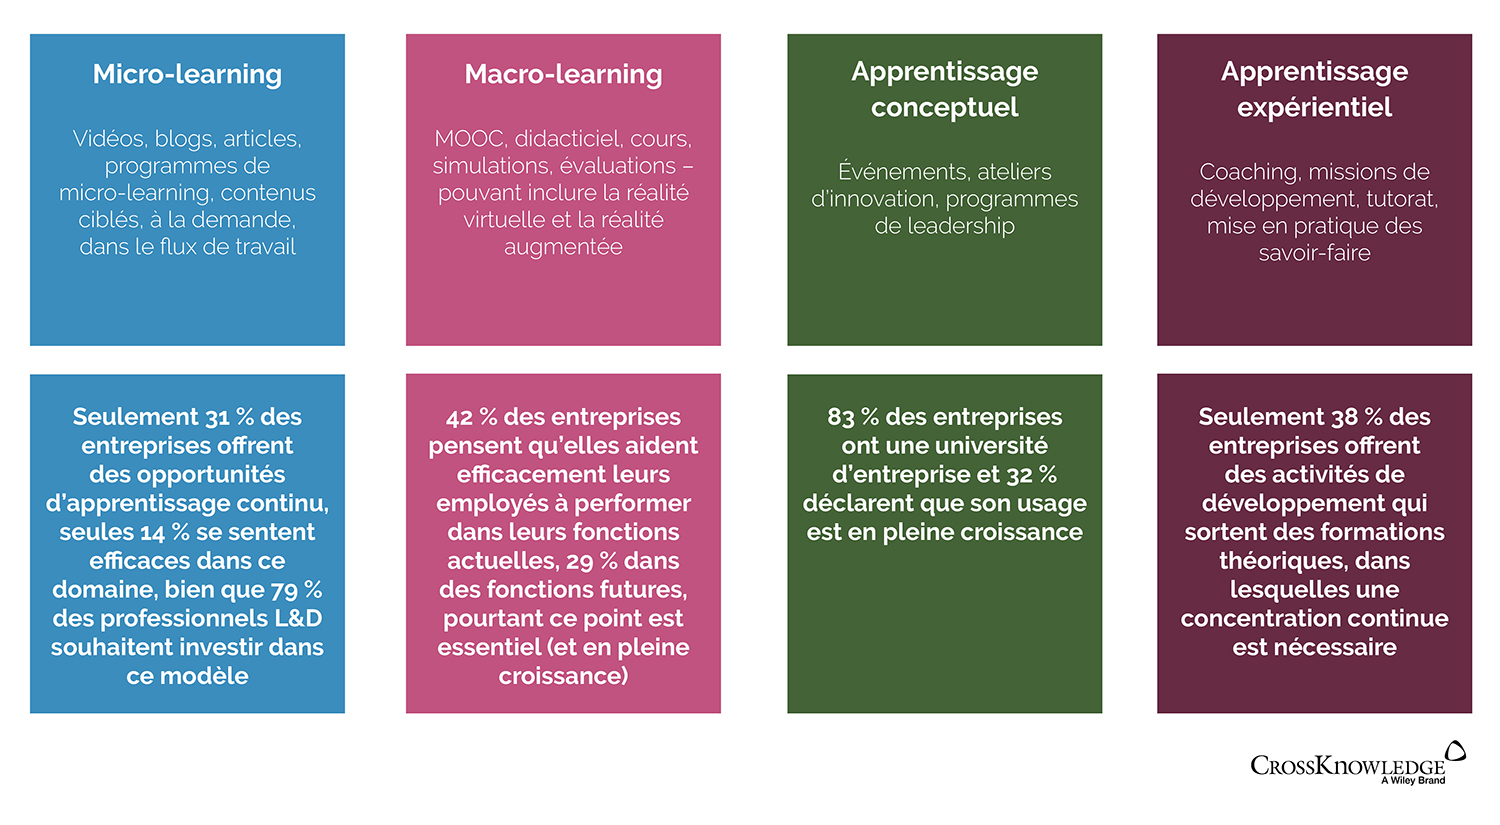 combiner micro et macro learning : le cycle d'apprentissage